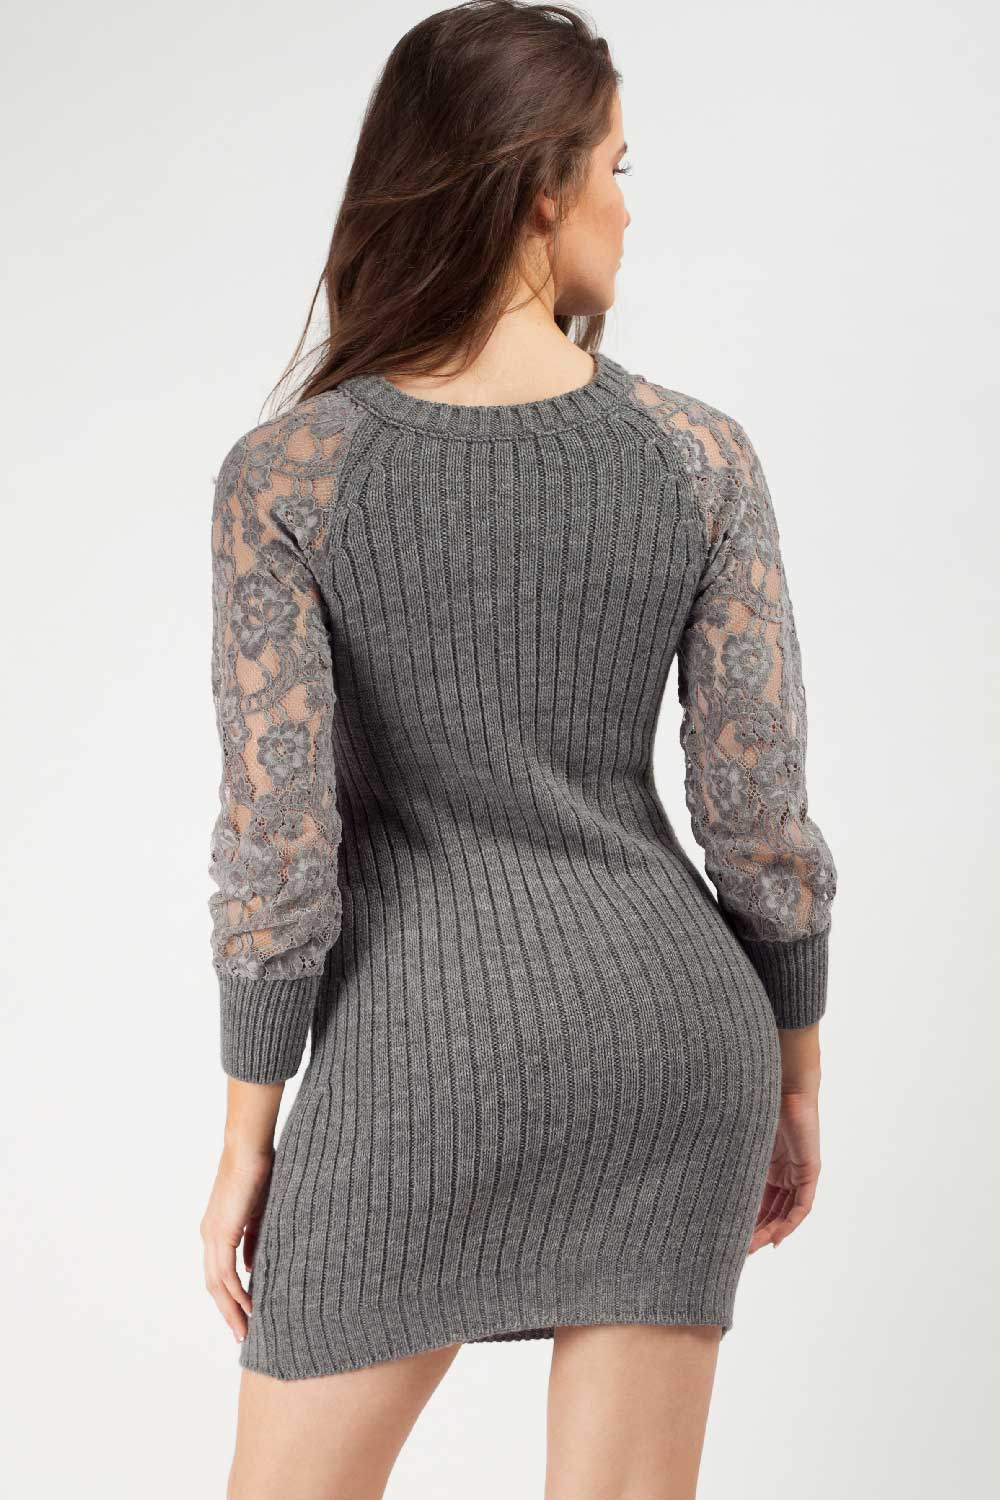 lace arm knitted jumper dress